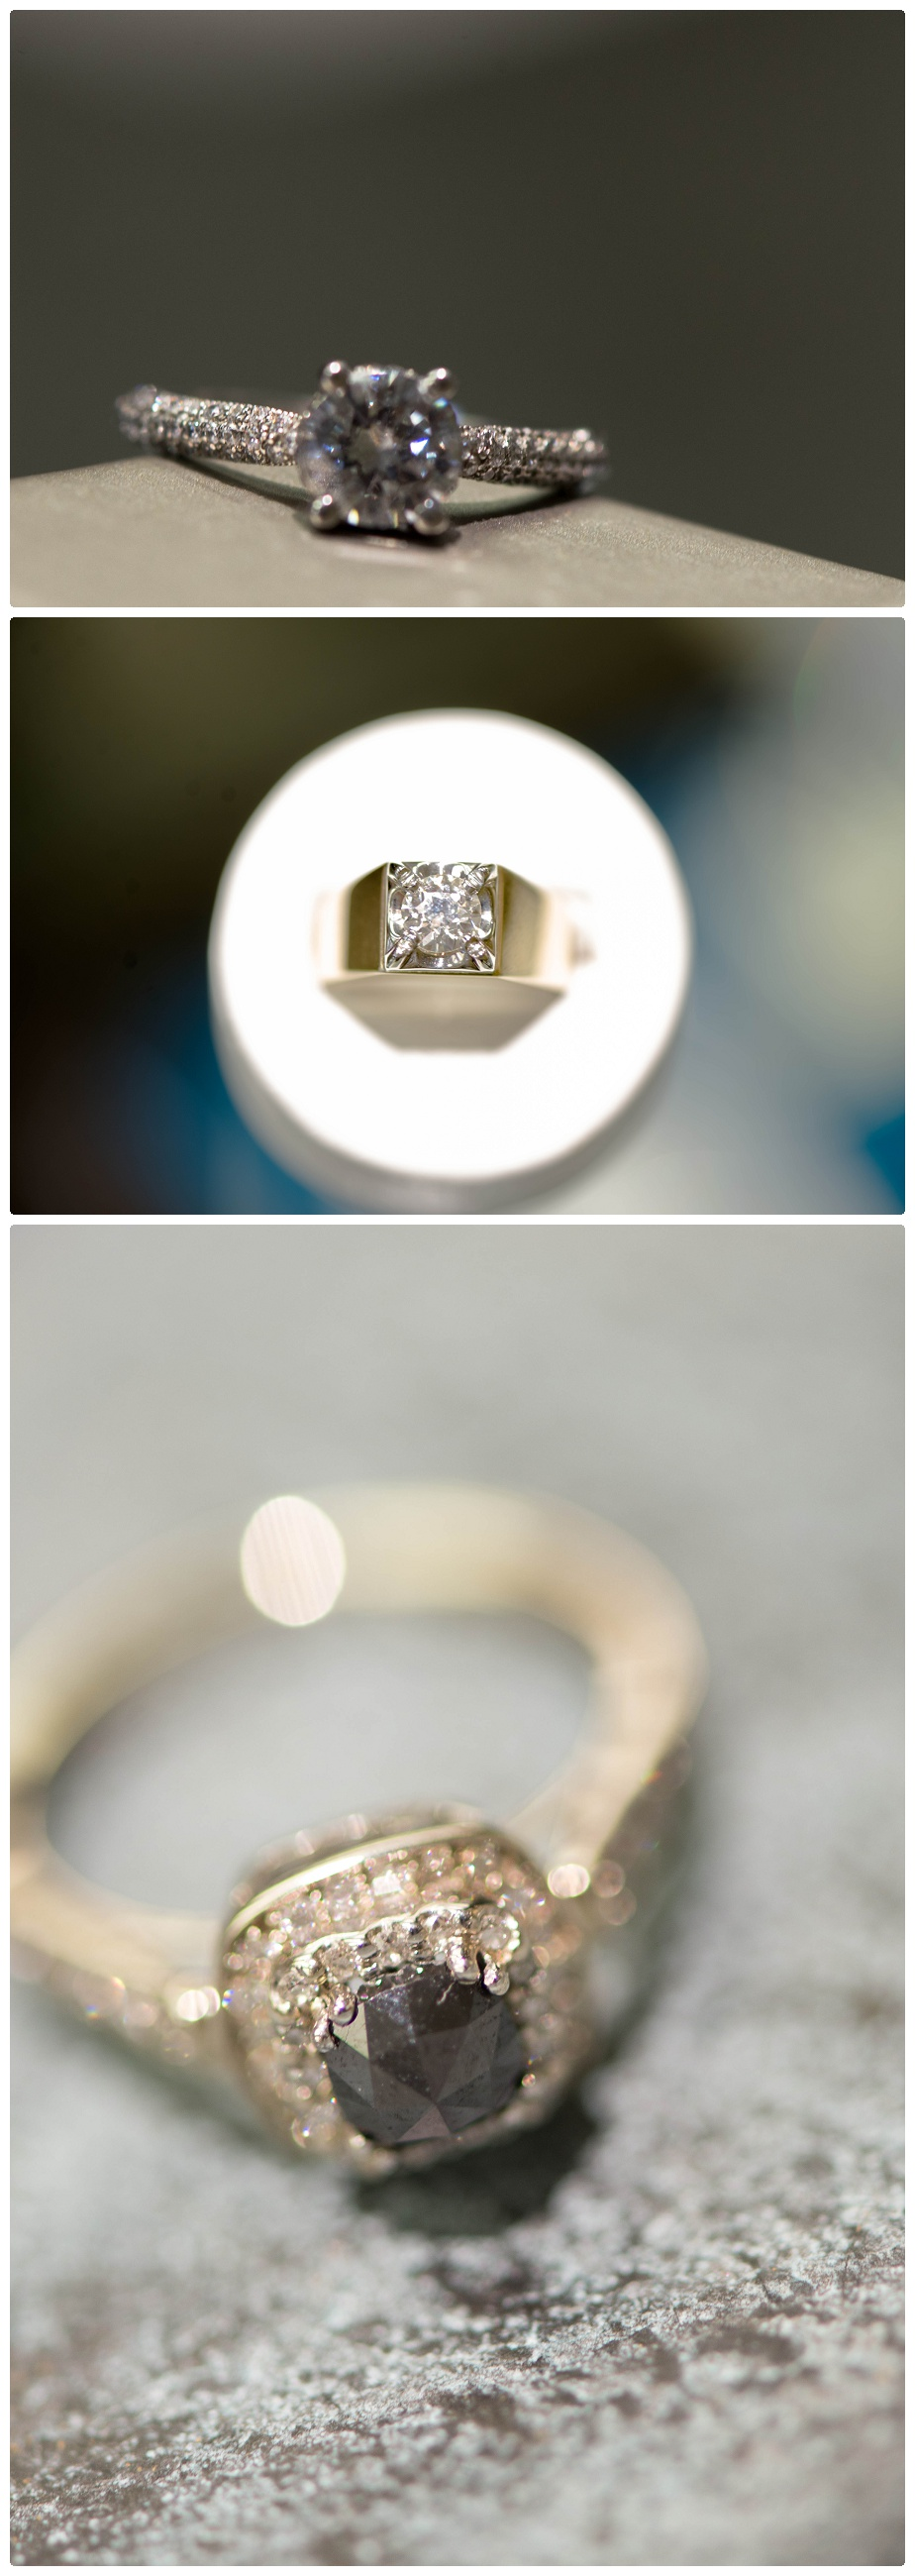 An unusual stone for a unique bride perhaps? This ring is gorgeous!